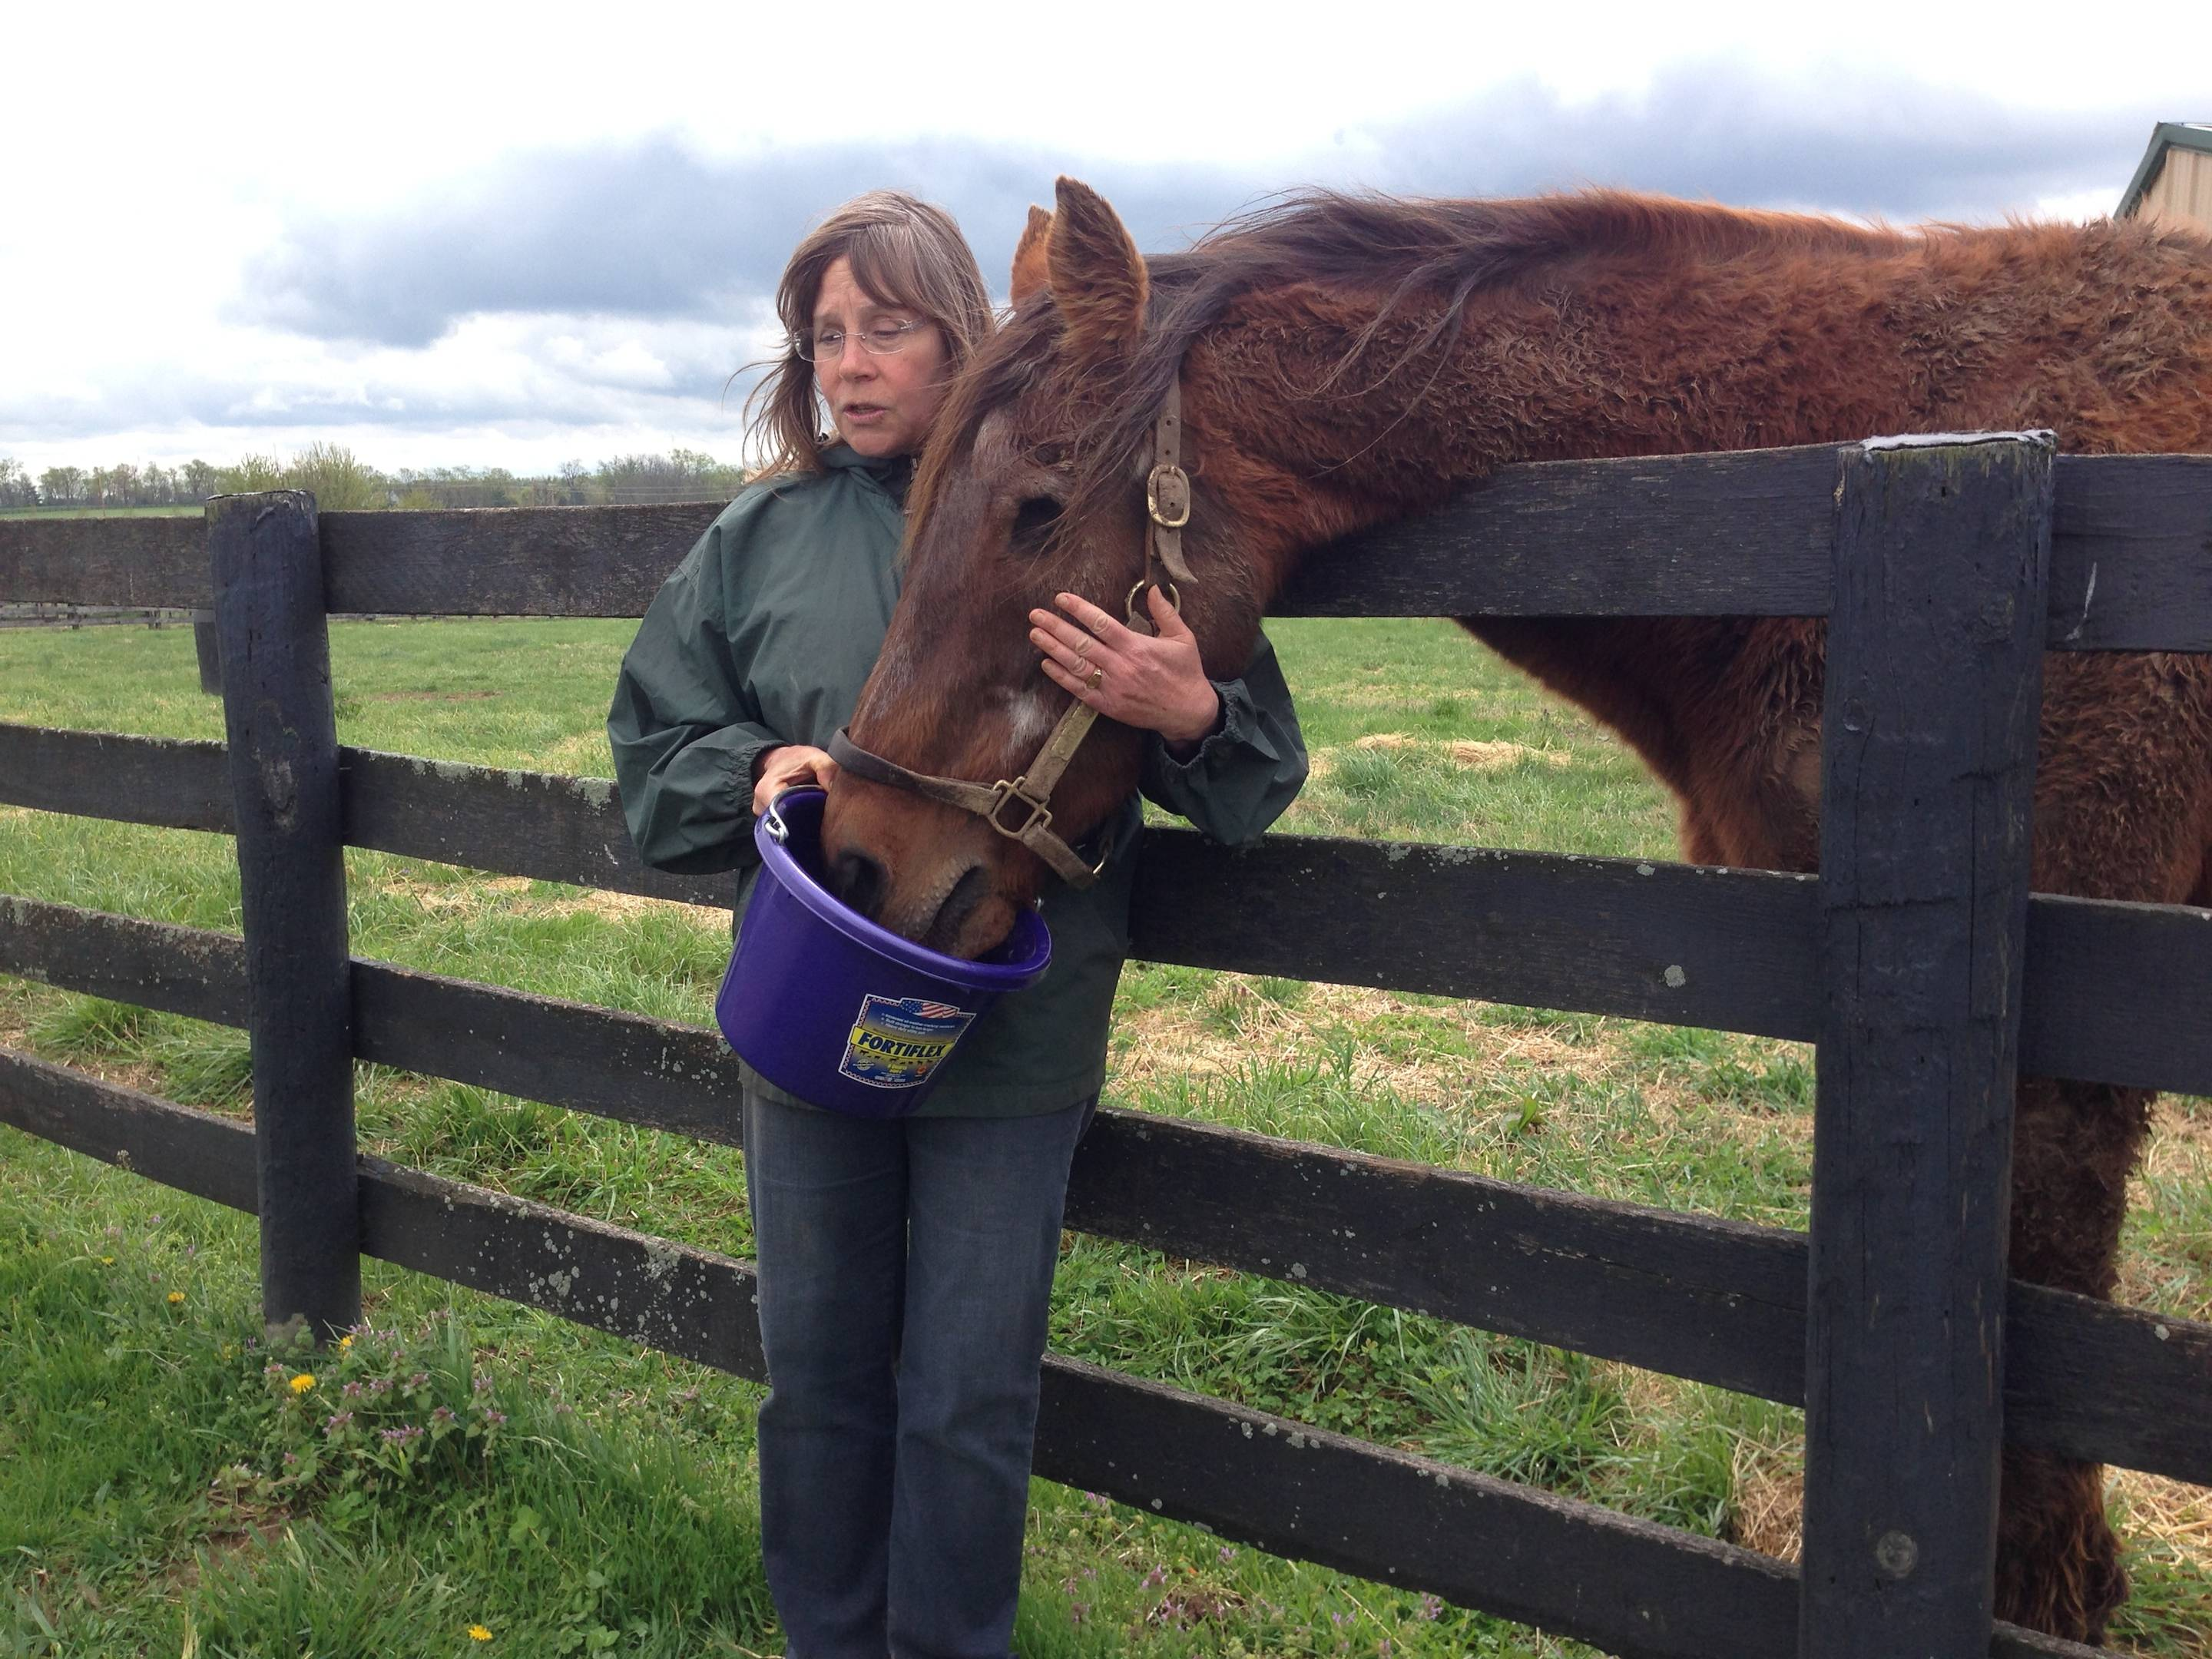 Once-great racehorses find happy home on Ky. farm